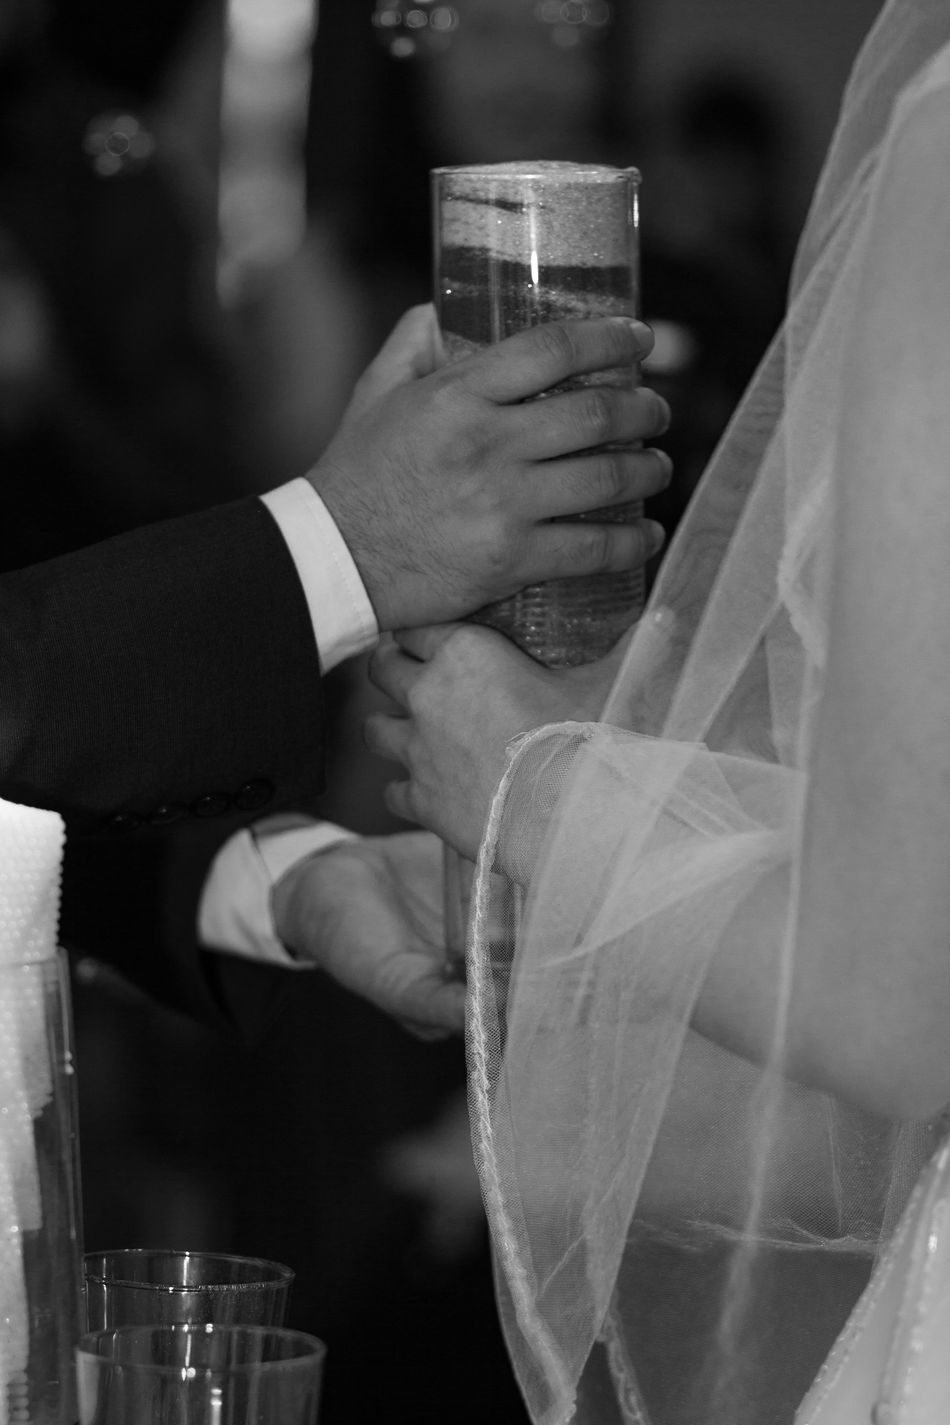 Bonding Bride Bridegroom Celebration Ceremony Close-up Couple - Relationship Groom Holding Human Body Part Human Hand Indoors  Life Events Love Men Midsection Night Real People Togetherness Two People Wedding Wedding Ceremony Wedding Dress Well-dressed Women